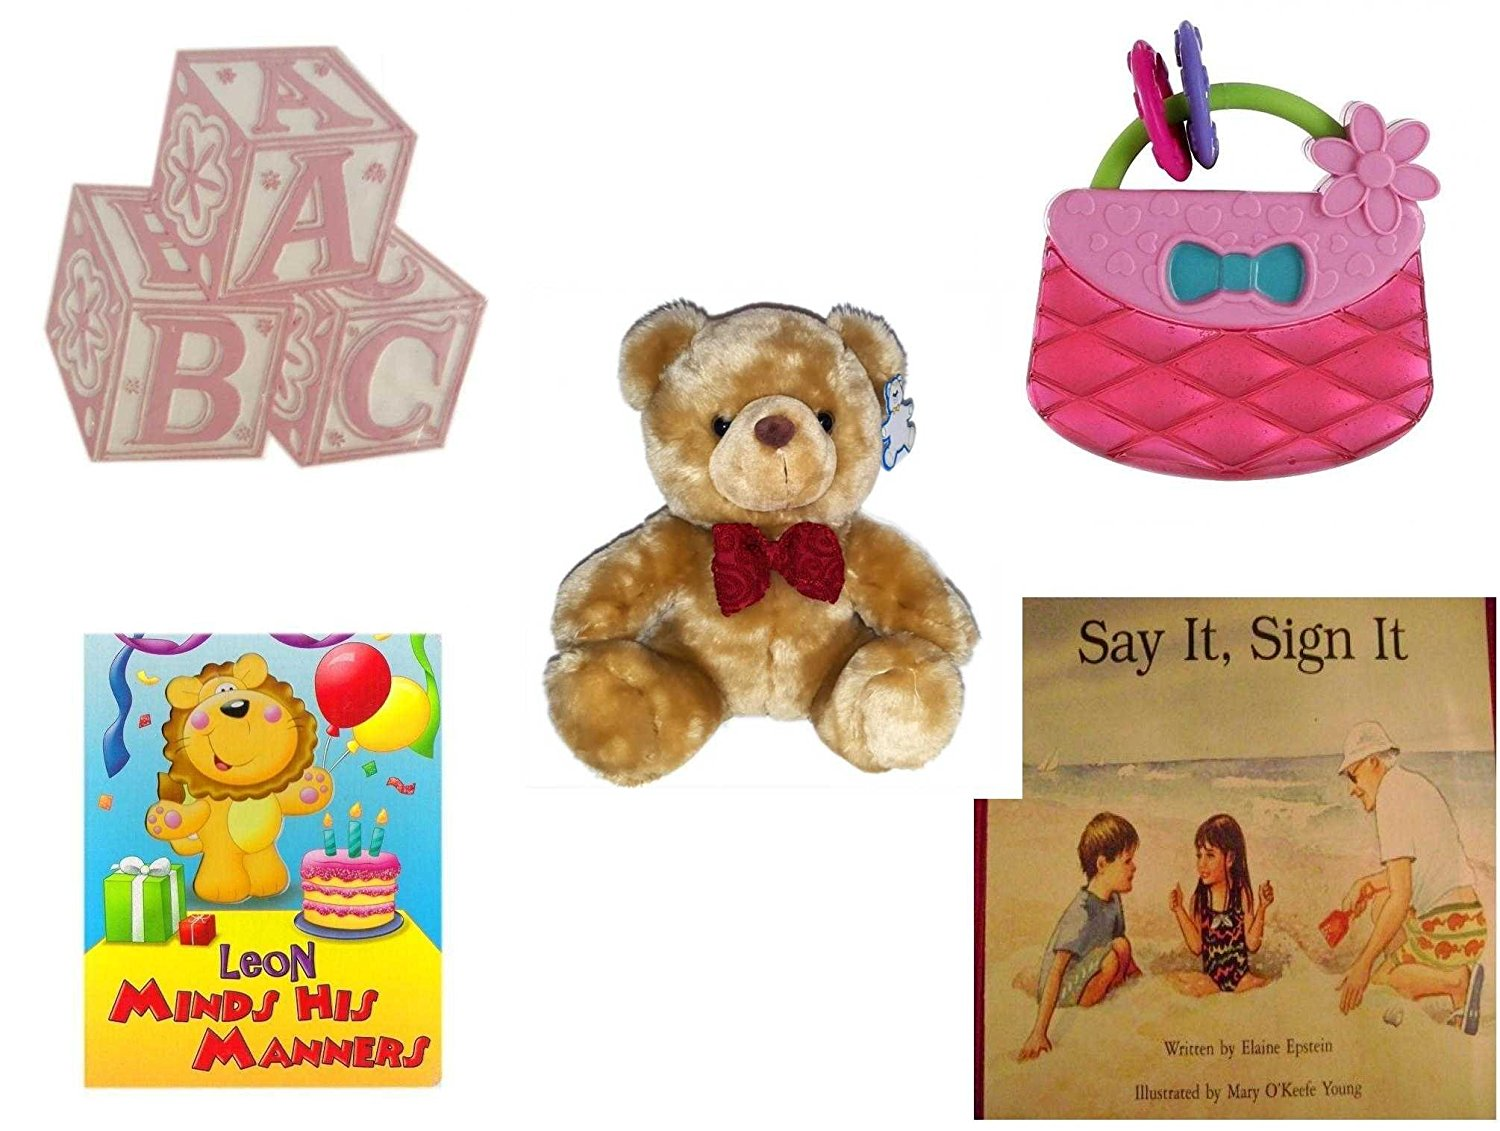 Children's Gift Bundle - Ages 0-2 [5 Piece] - ABC Baby Blocks Cake Topper Pink Girl - Bright Starts Pretty in Pink Carry Teethe Purse - Large Teddy Bear In Bowtie Plush - Leon Minds His Manners Boar